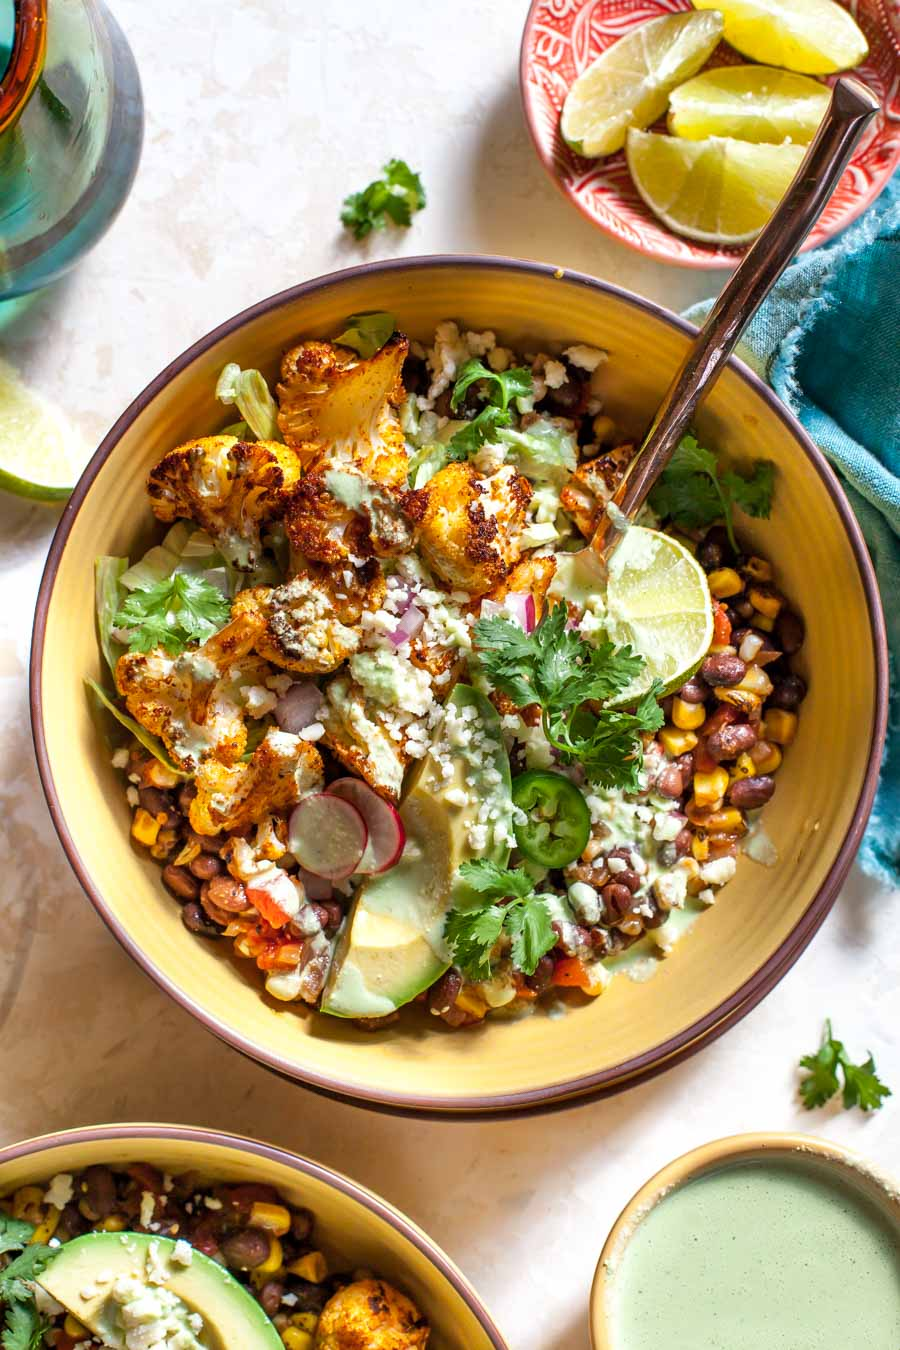 Roasted Cauliflower Burrito Bowls with chipotle-style black beans and Jalapeño Ranch